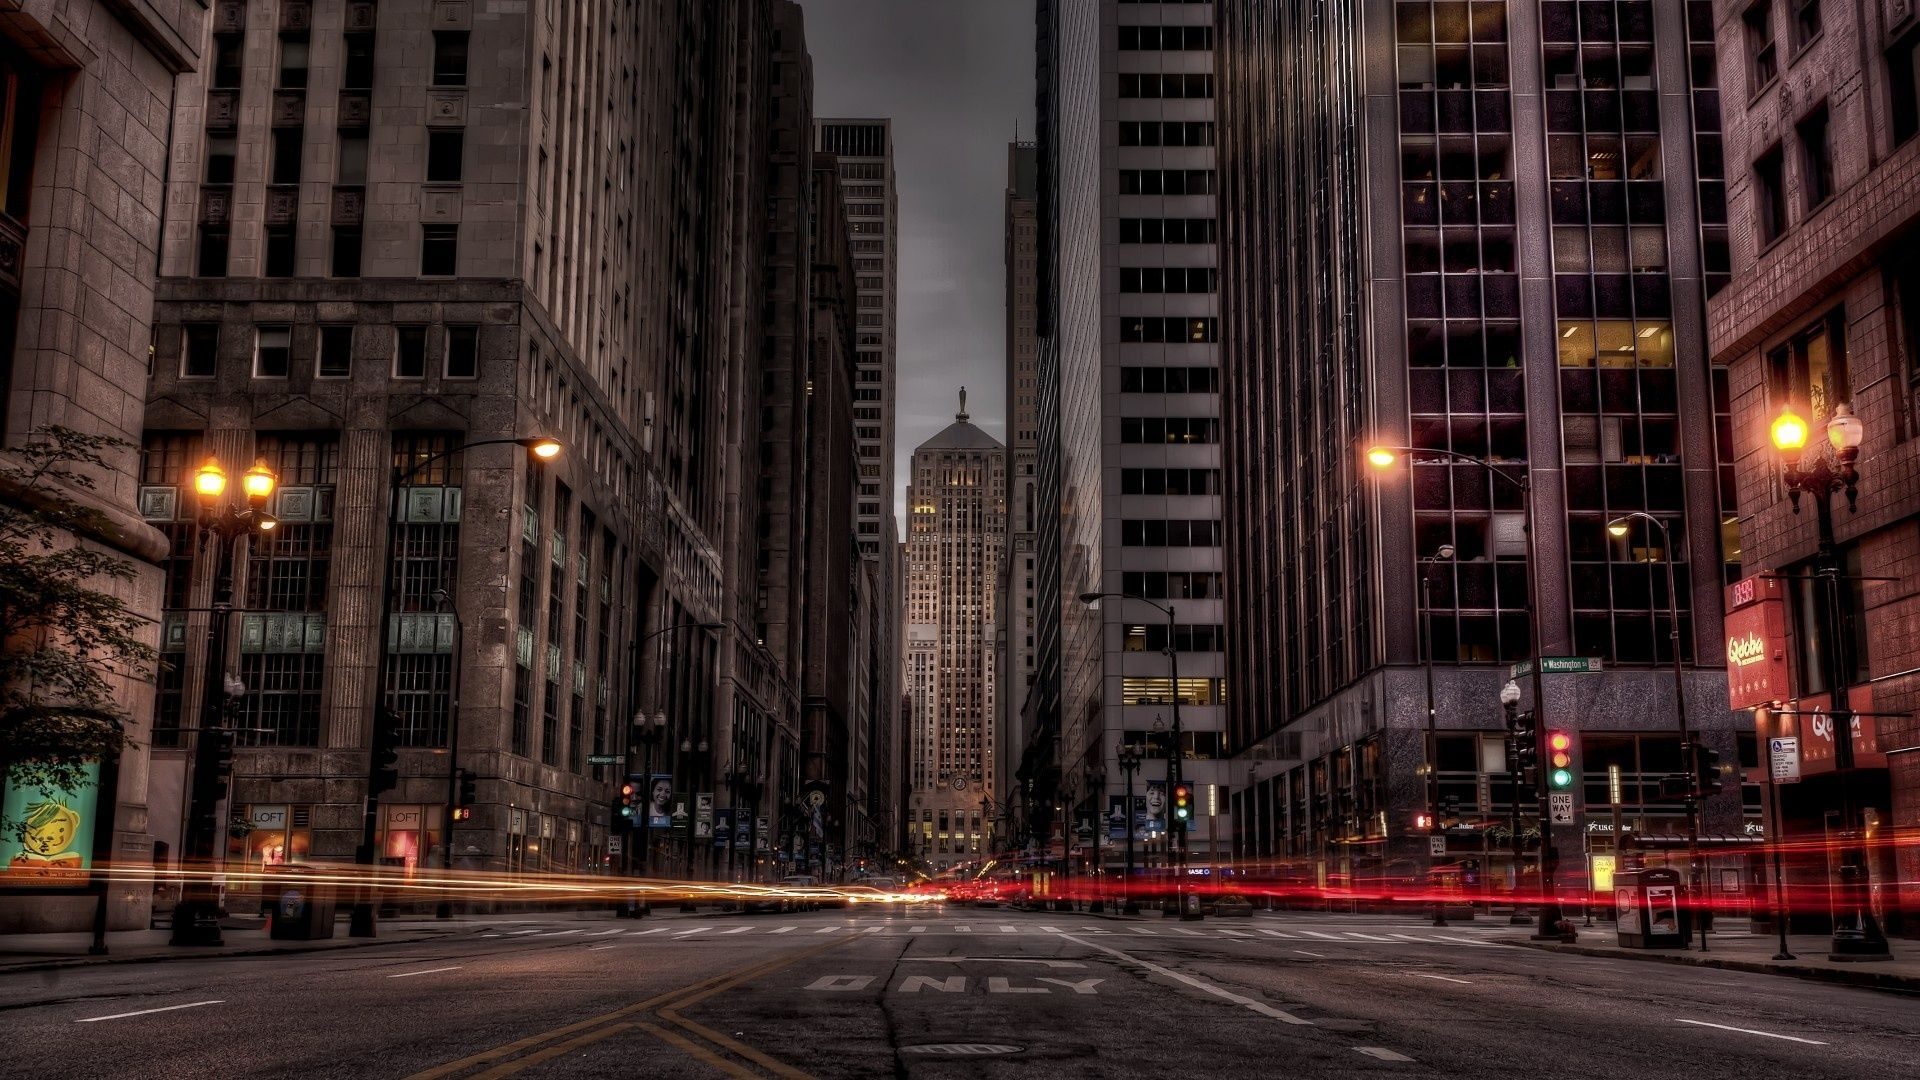 Chicago City Streets City Streets Photography City Background